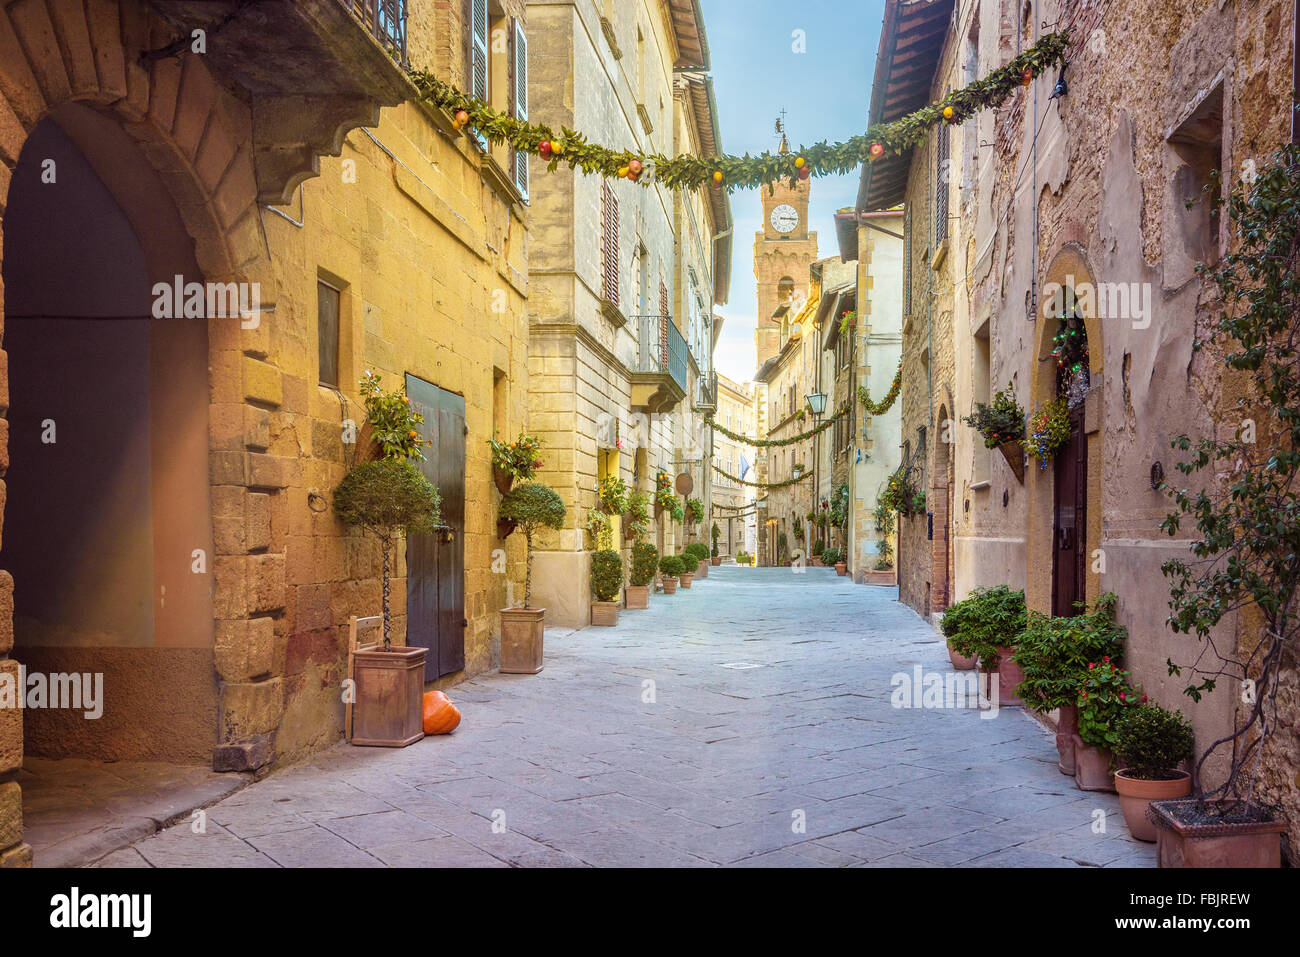 Beautiful places in the magical tiny town - Stock Image